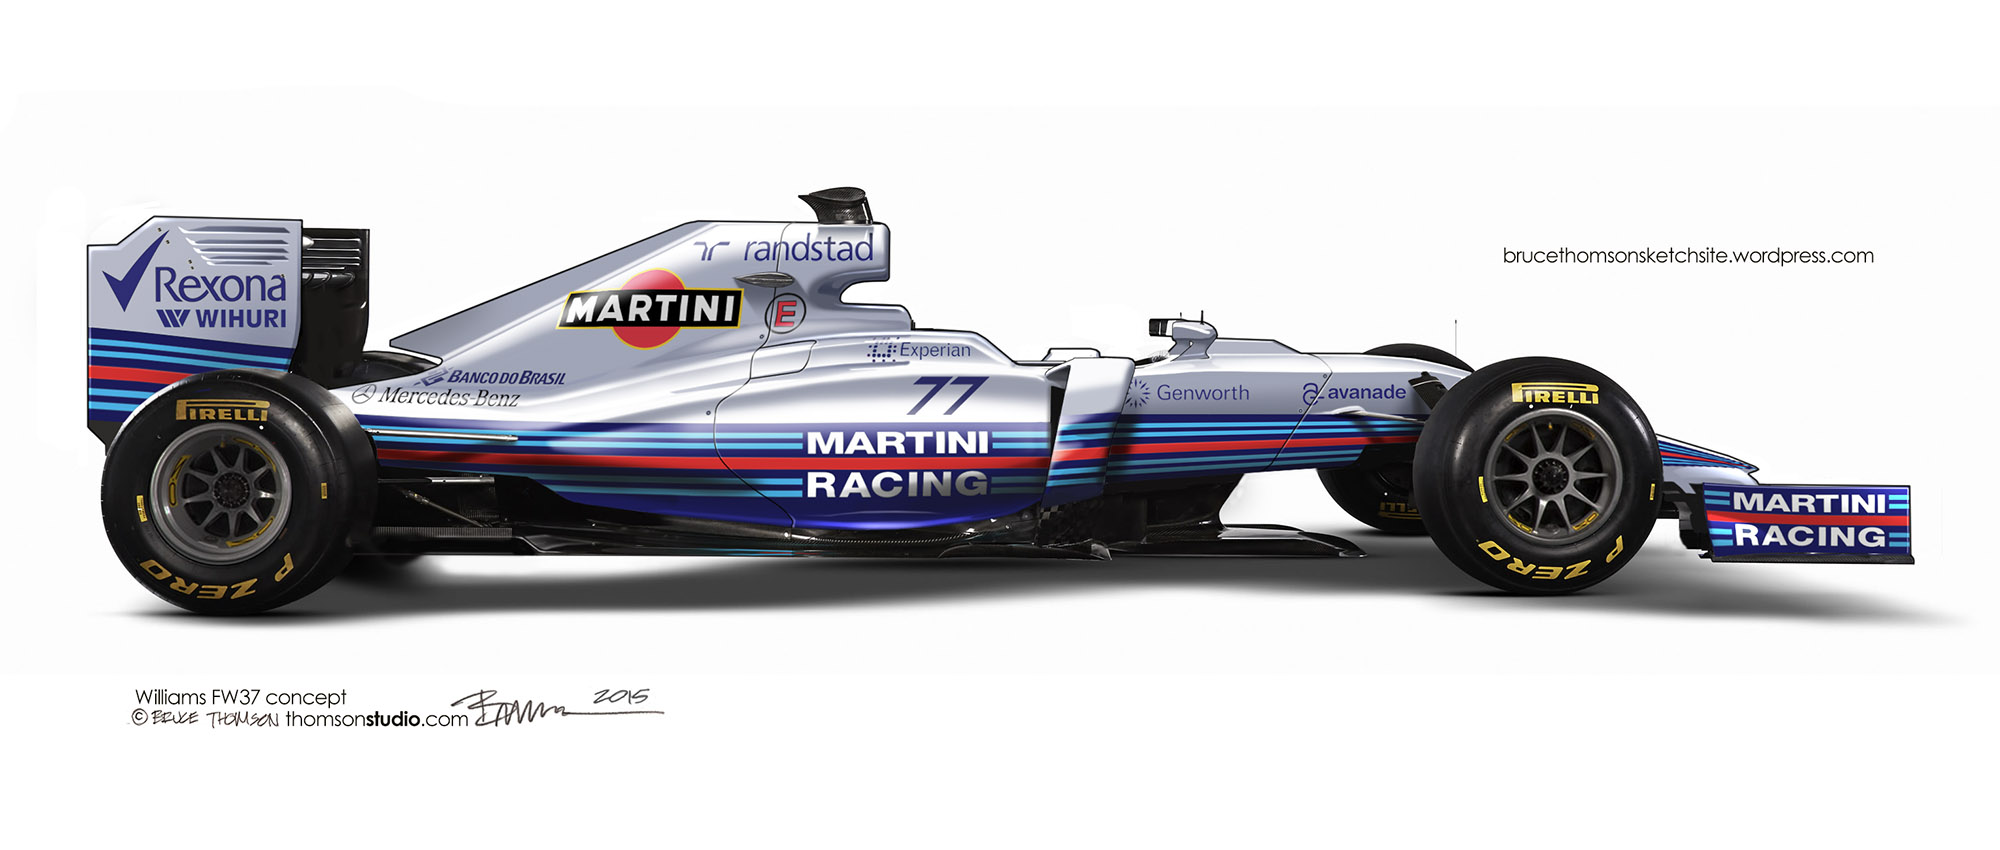 thomsonstudio_2015_williams_fw37_concept